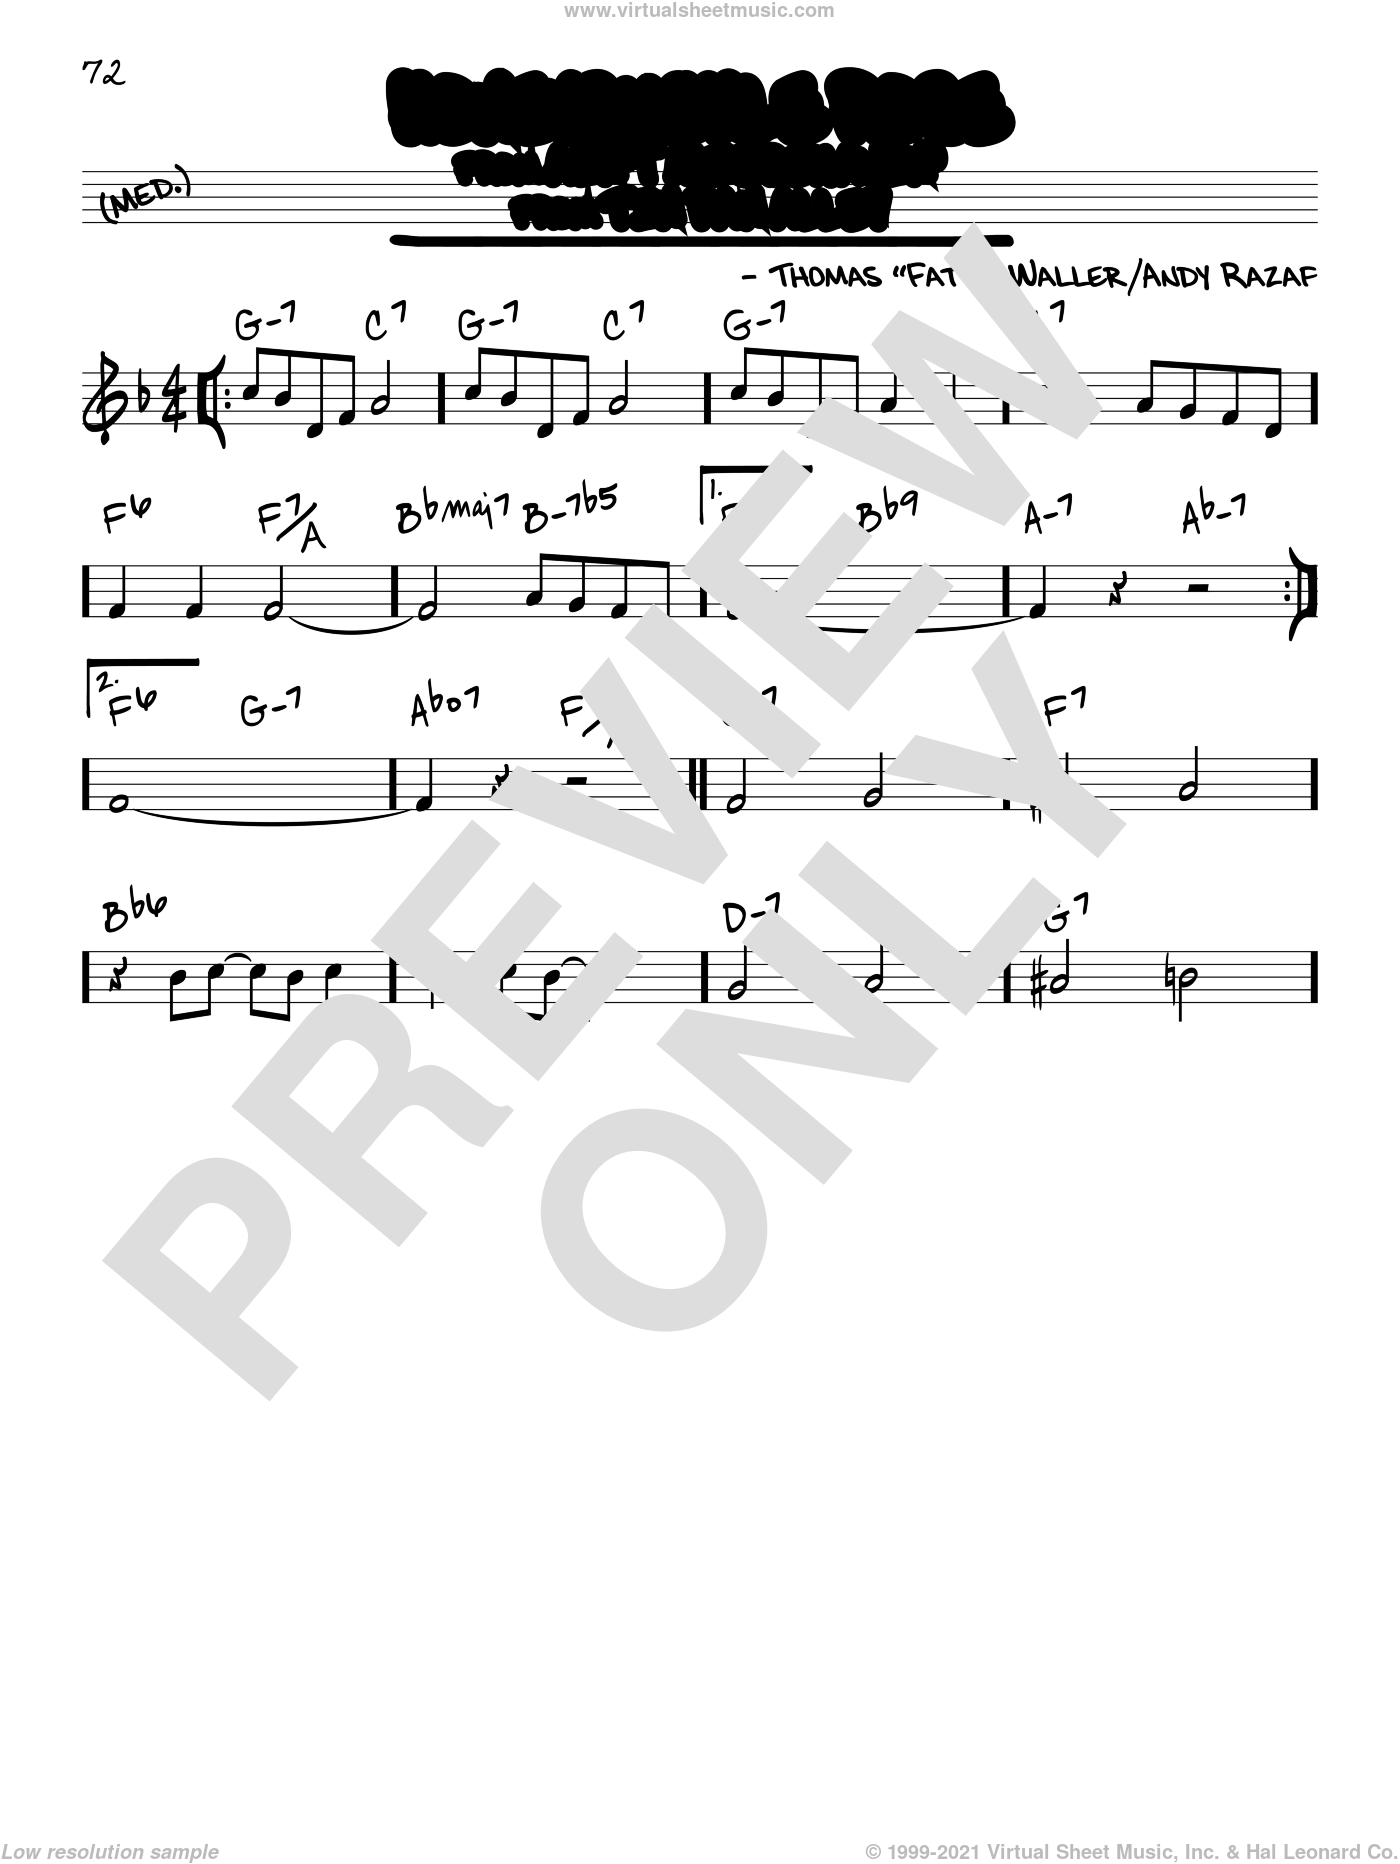 Honeysuckle Rose sheet music for voice and other instruments (real book) by Django Reinhardt, Andy Razaf and Thomas Waller, intermediate skill level